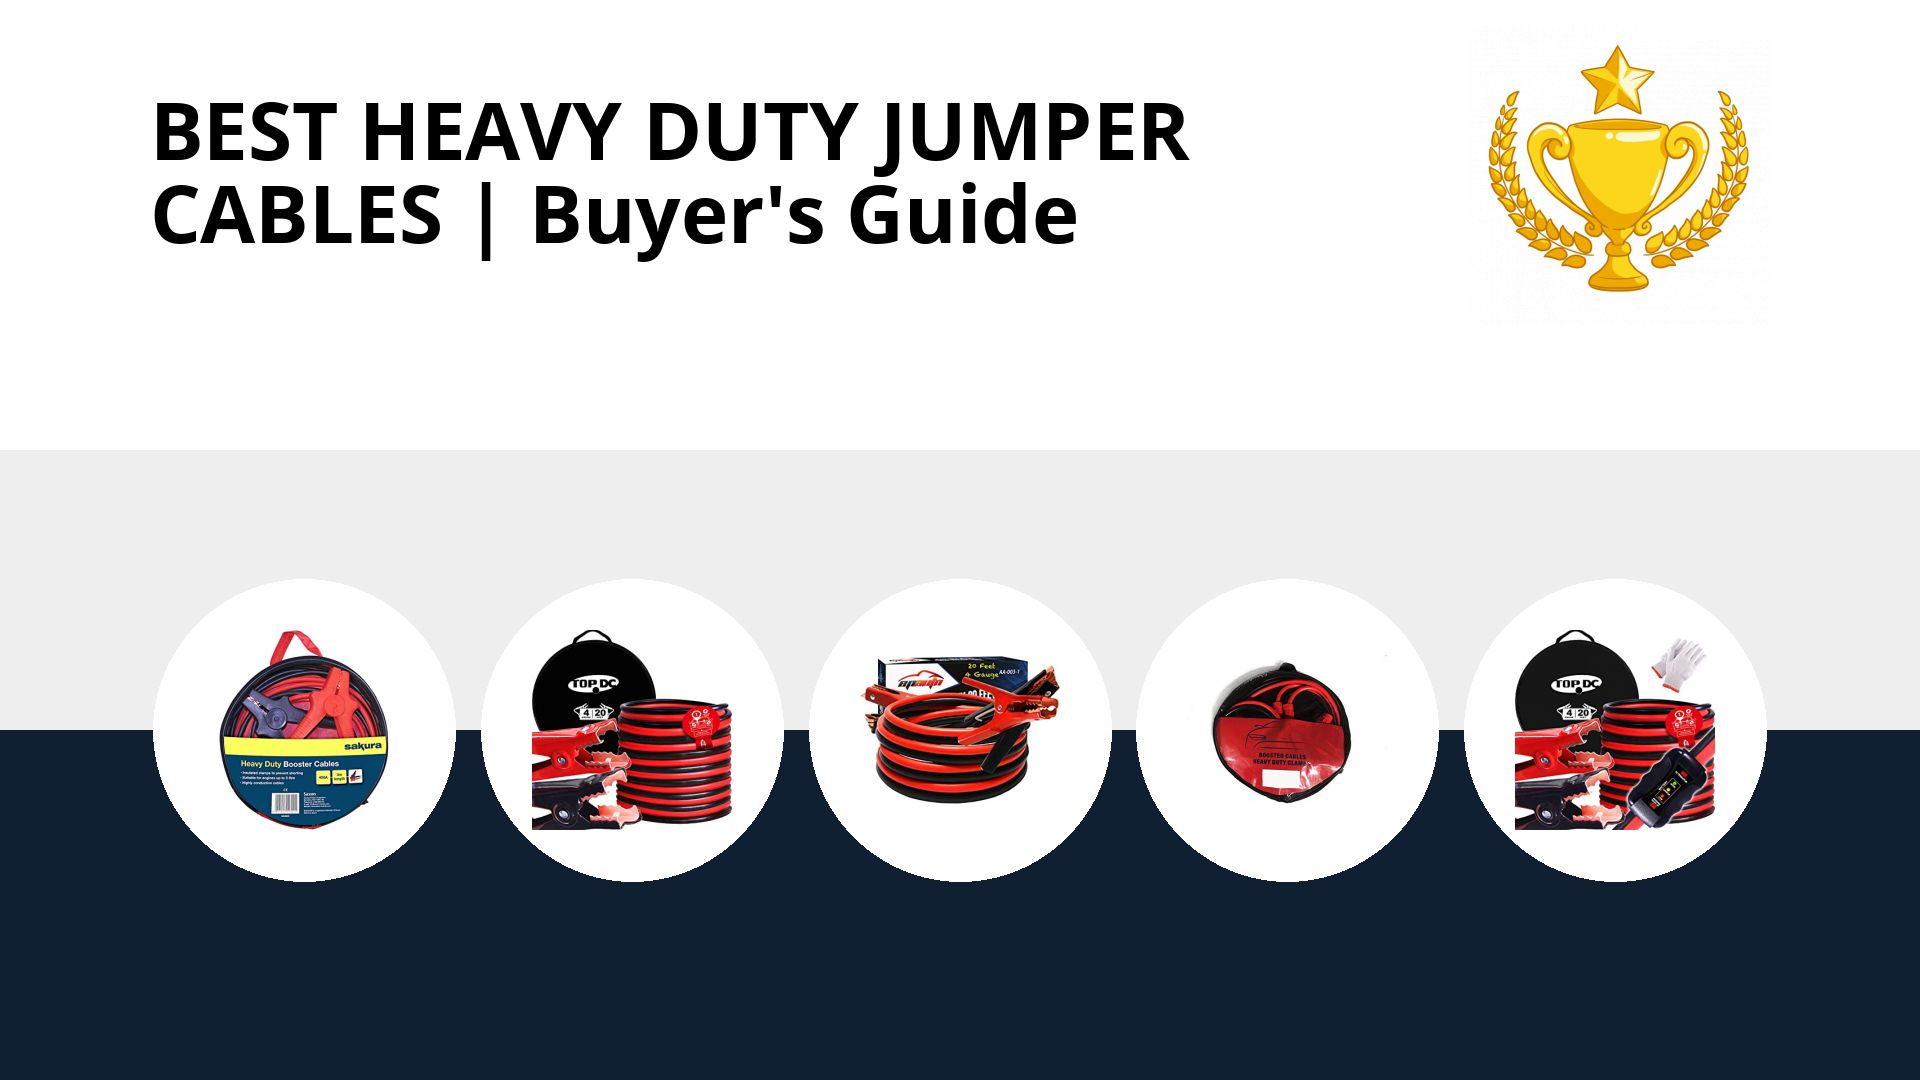 Best Heavy Duty Jumper Cables: image